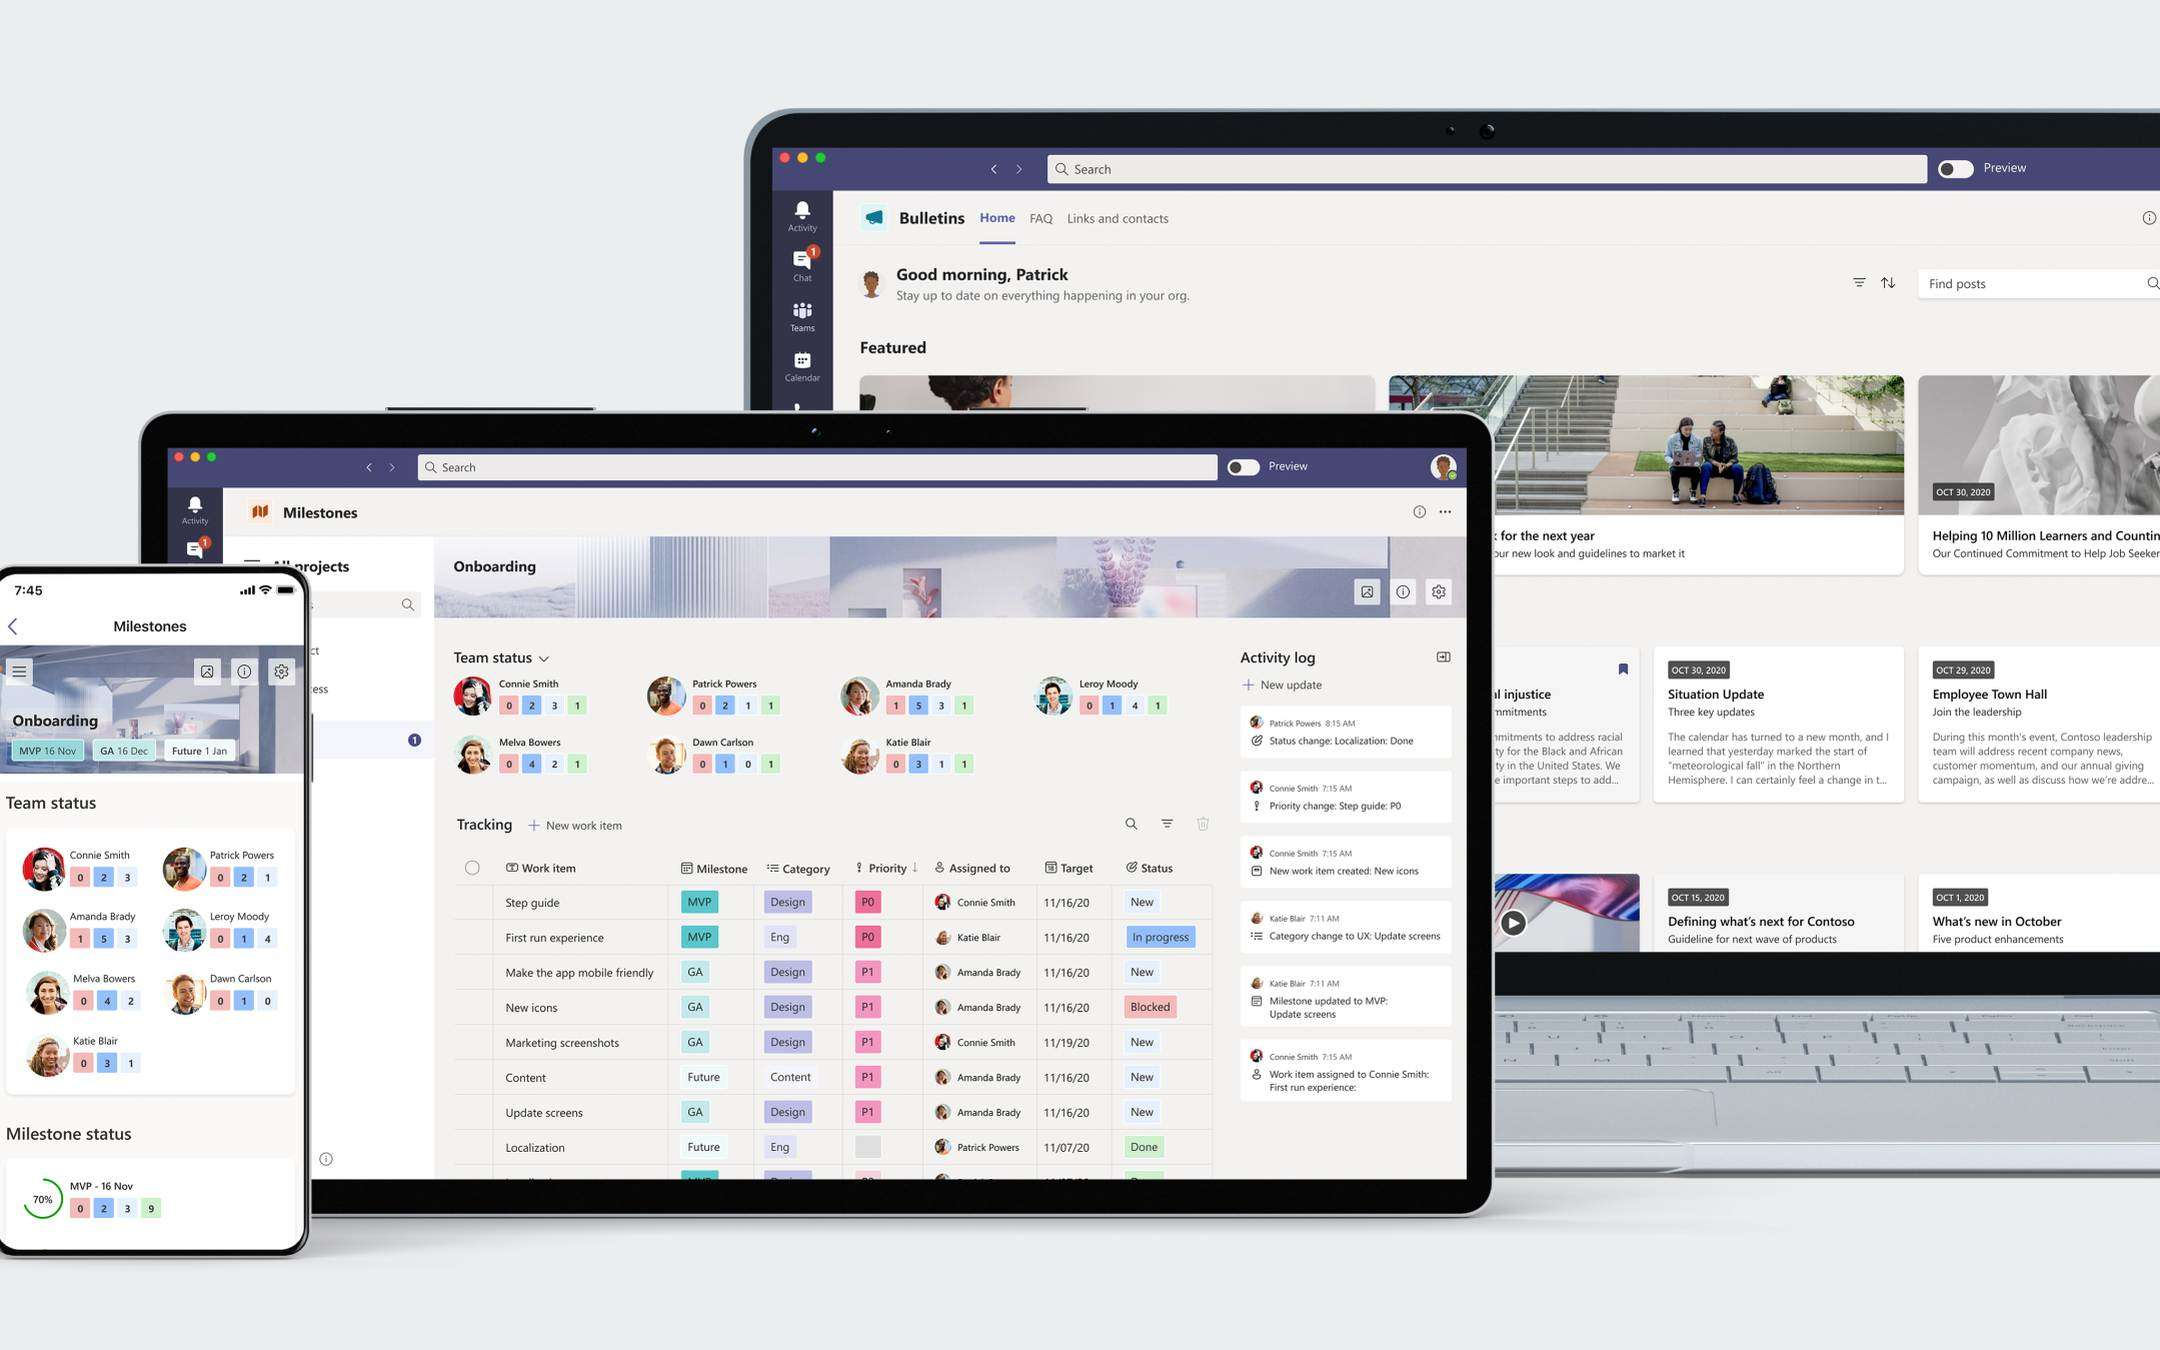 Microsoft Teams: new Bulletins and Milestones apps